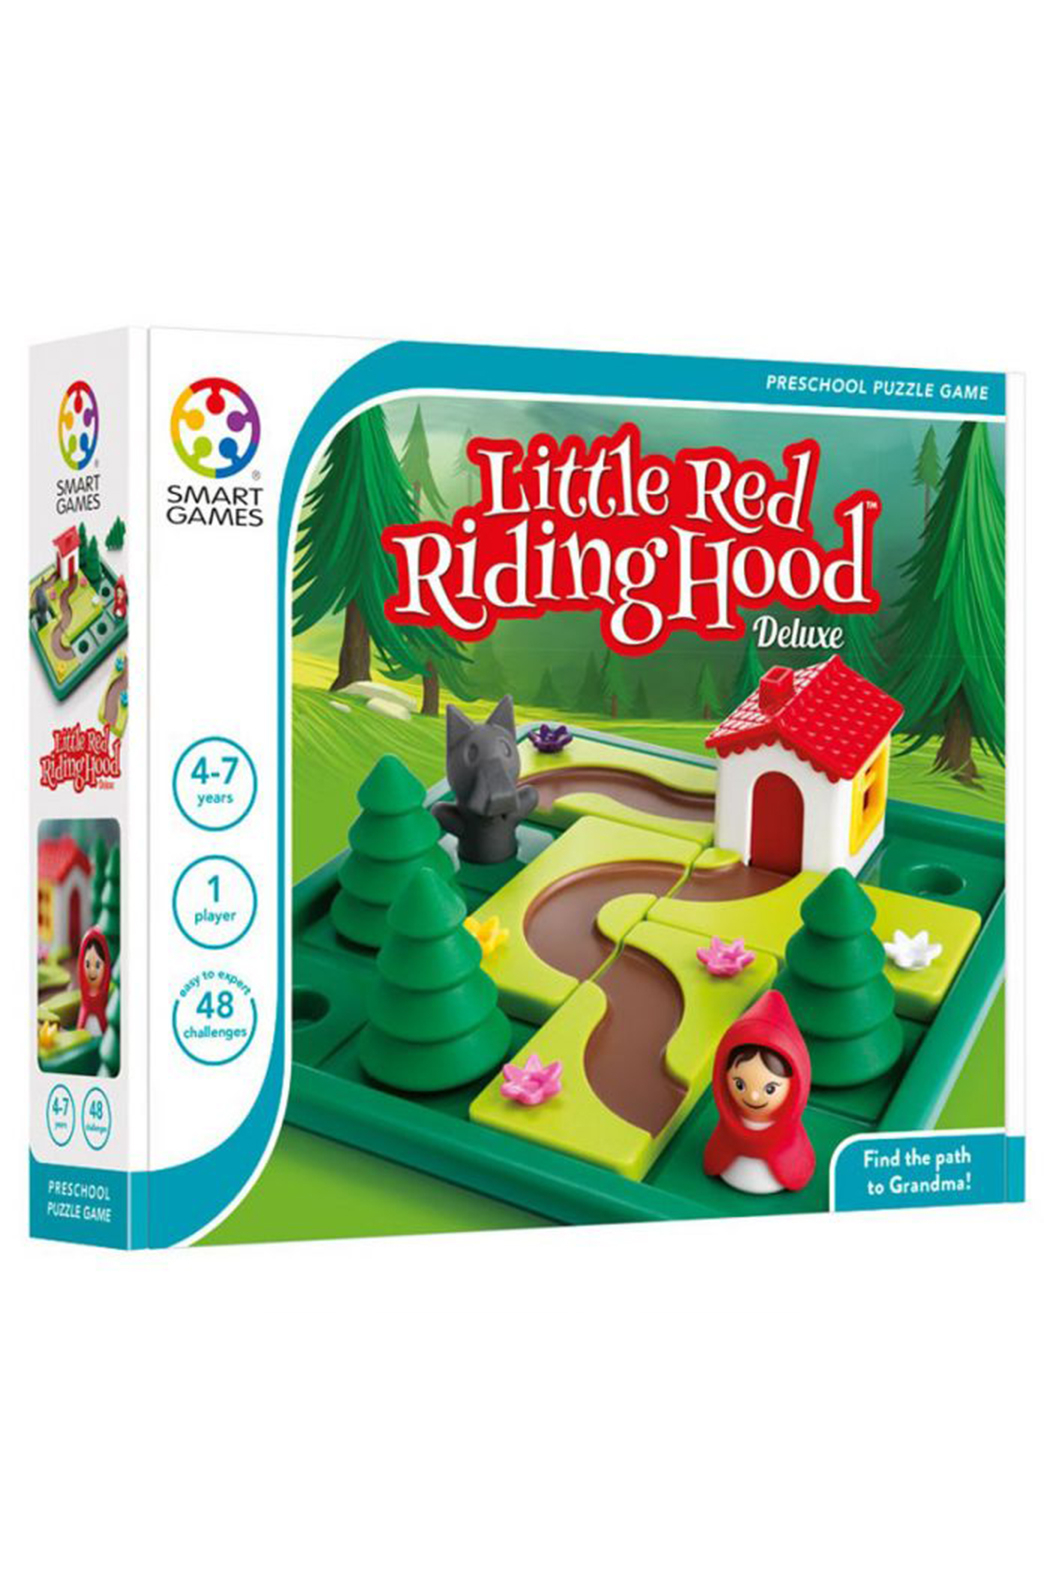 SmartGames Little Red Riding Hood Deluxe Preschool Puzzle Game - Main Image